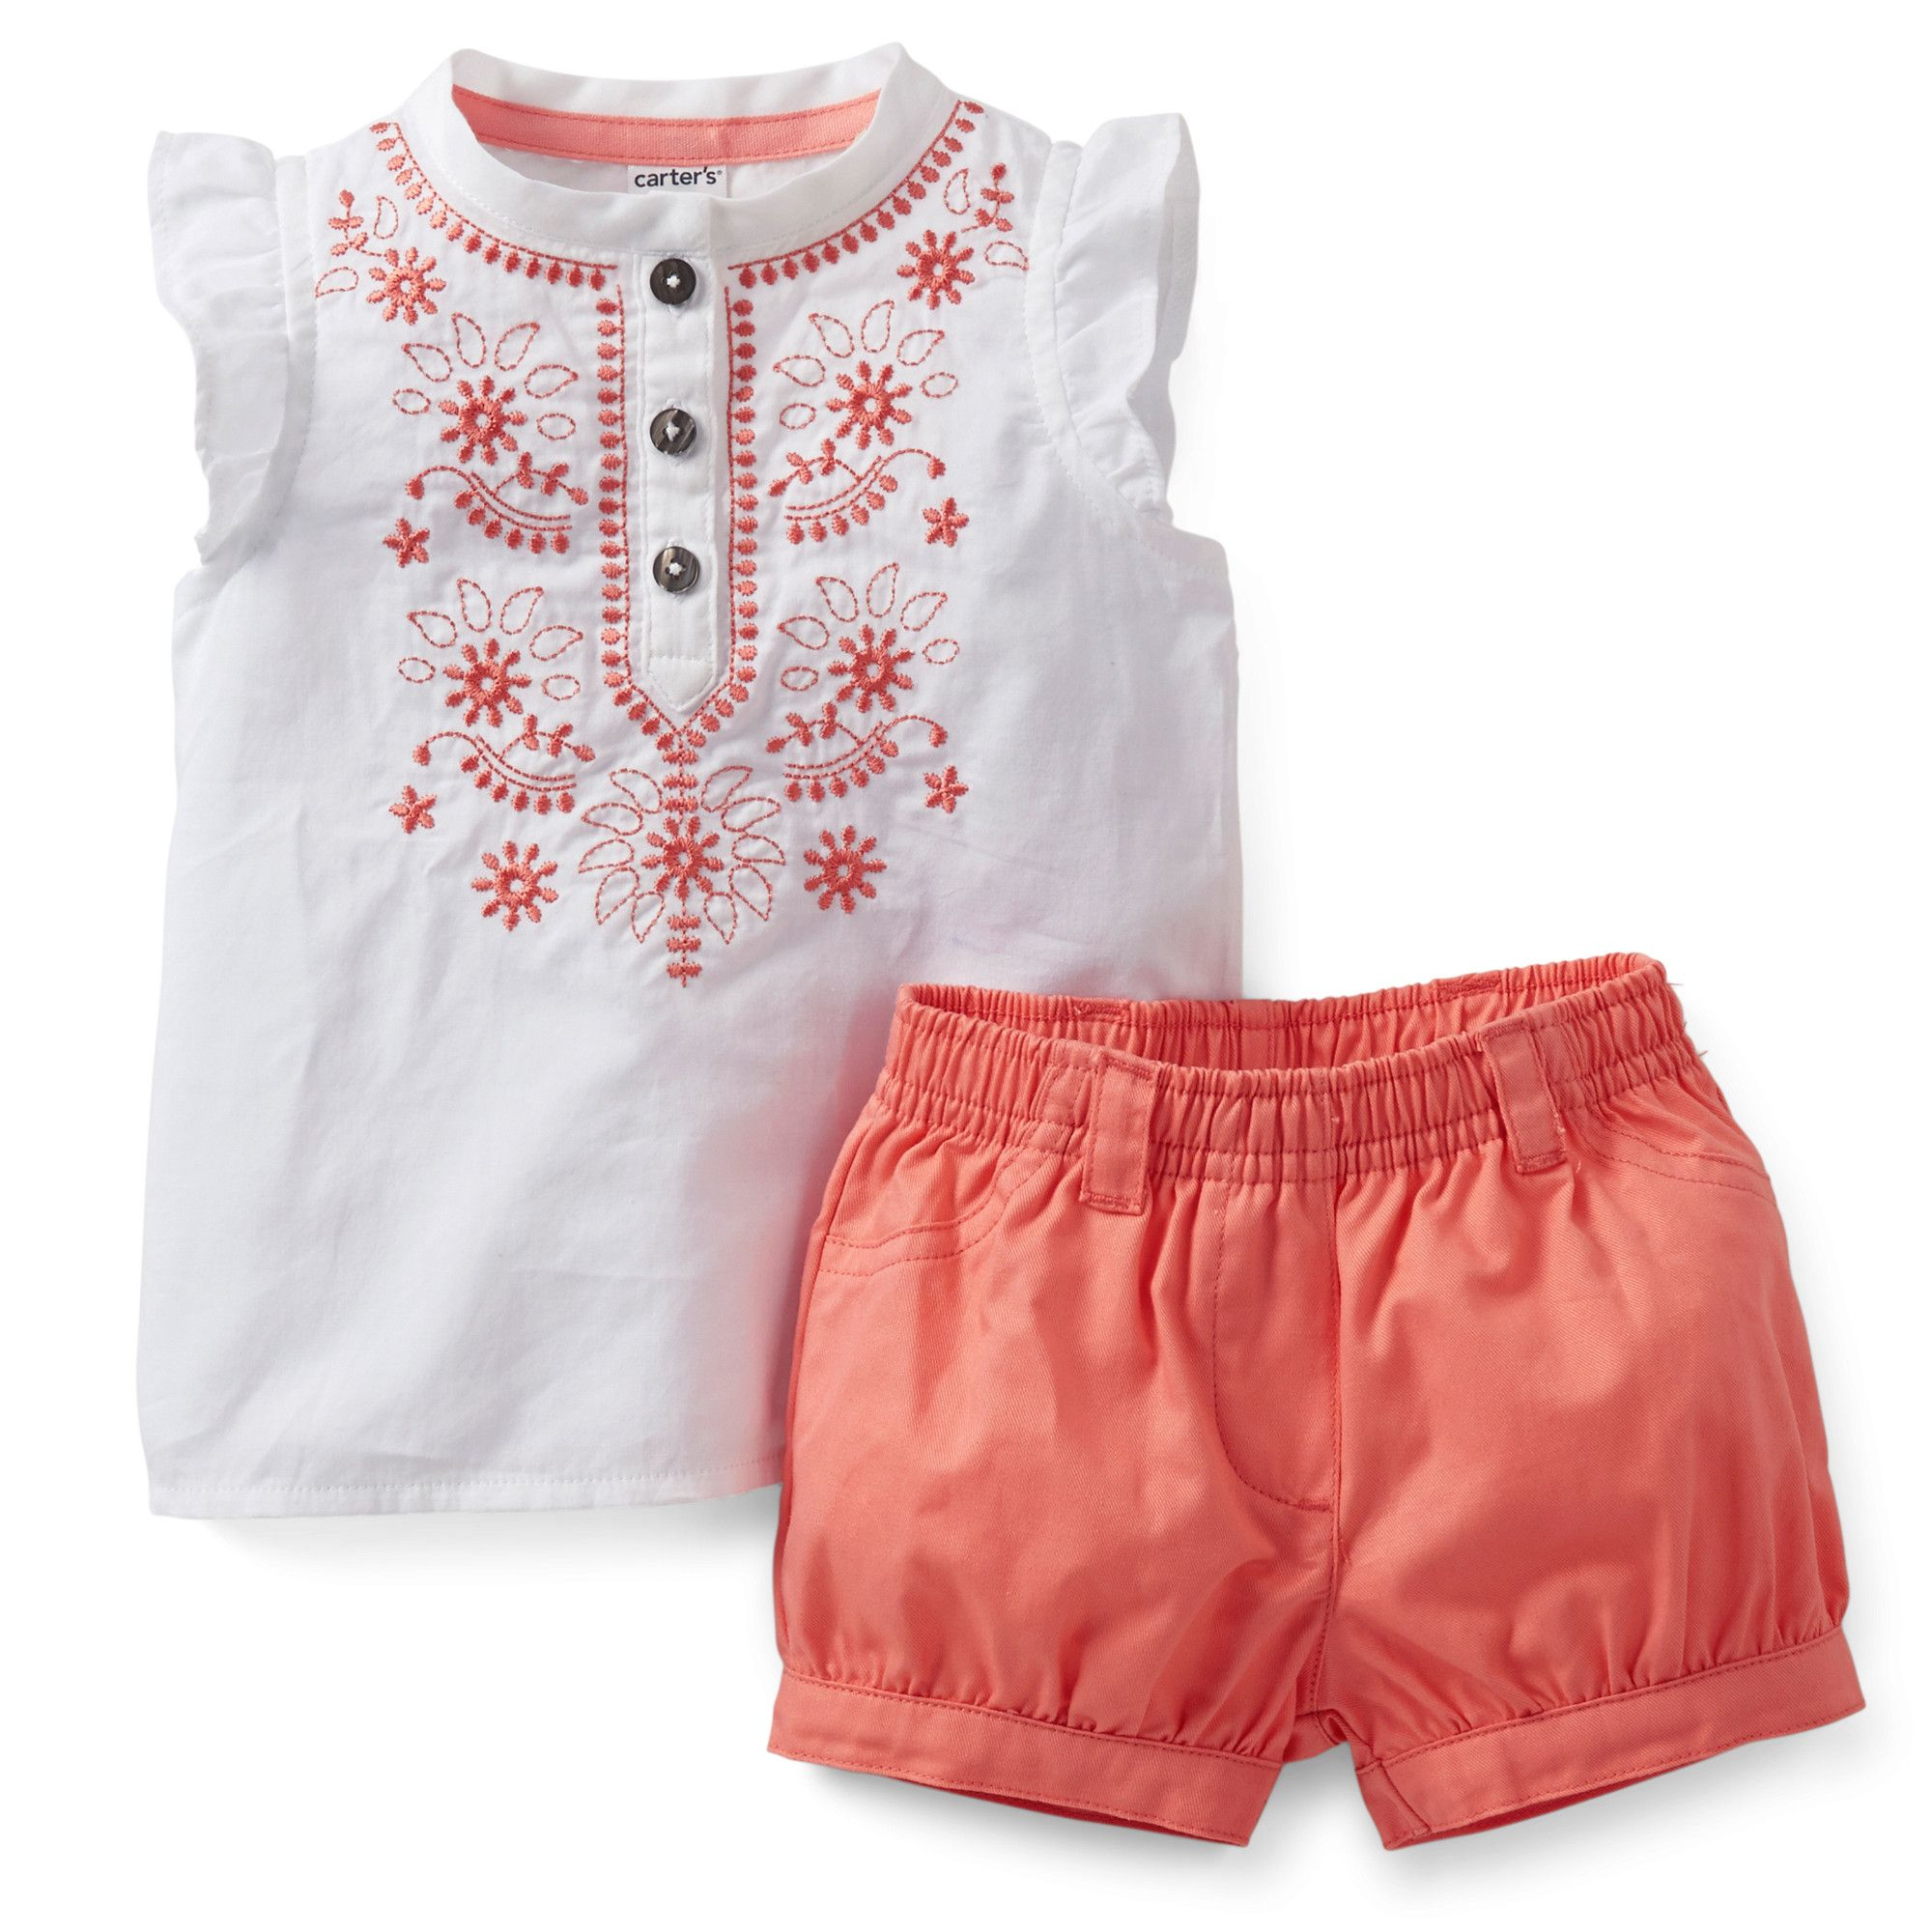 Carters Herringbone Shorts 2T